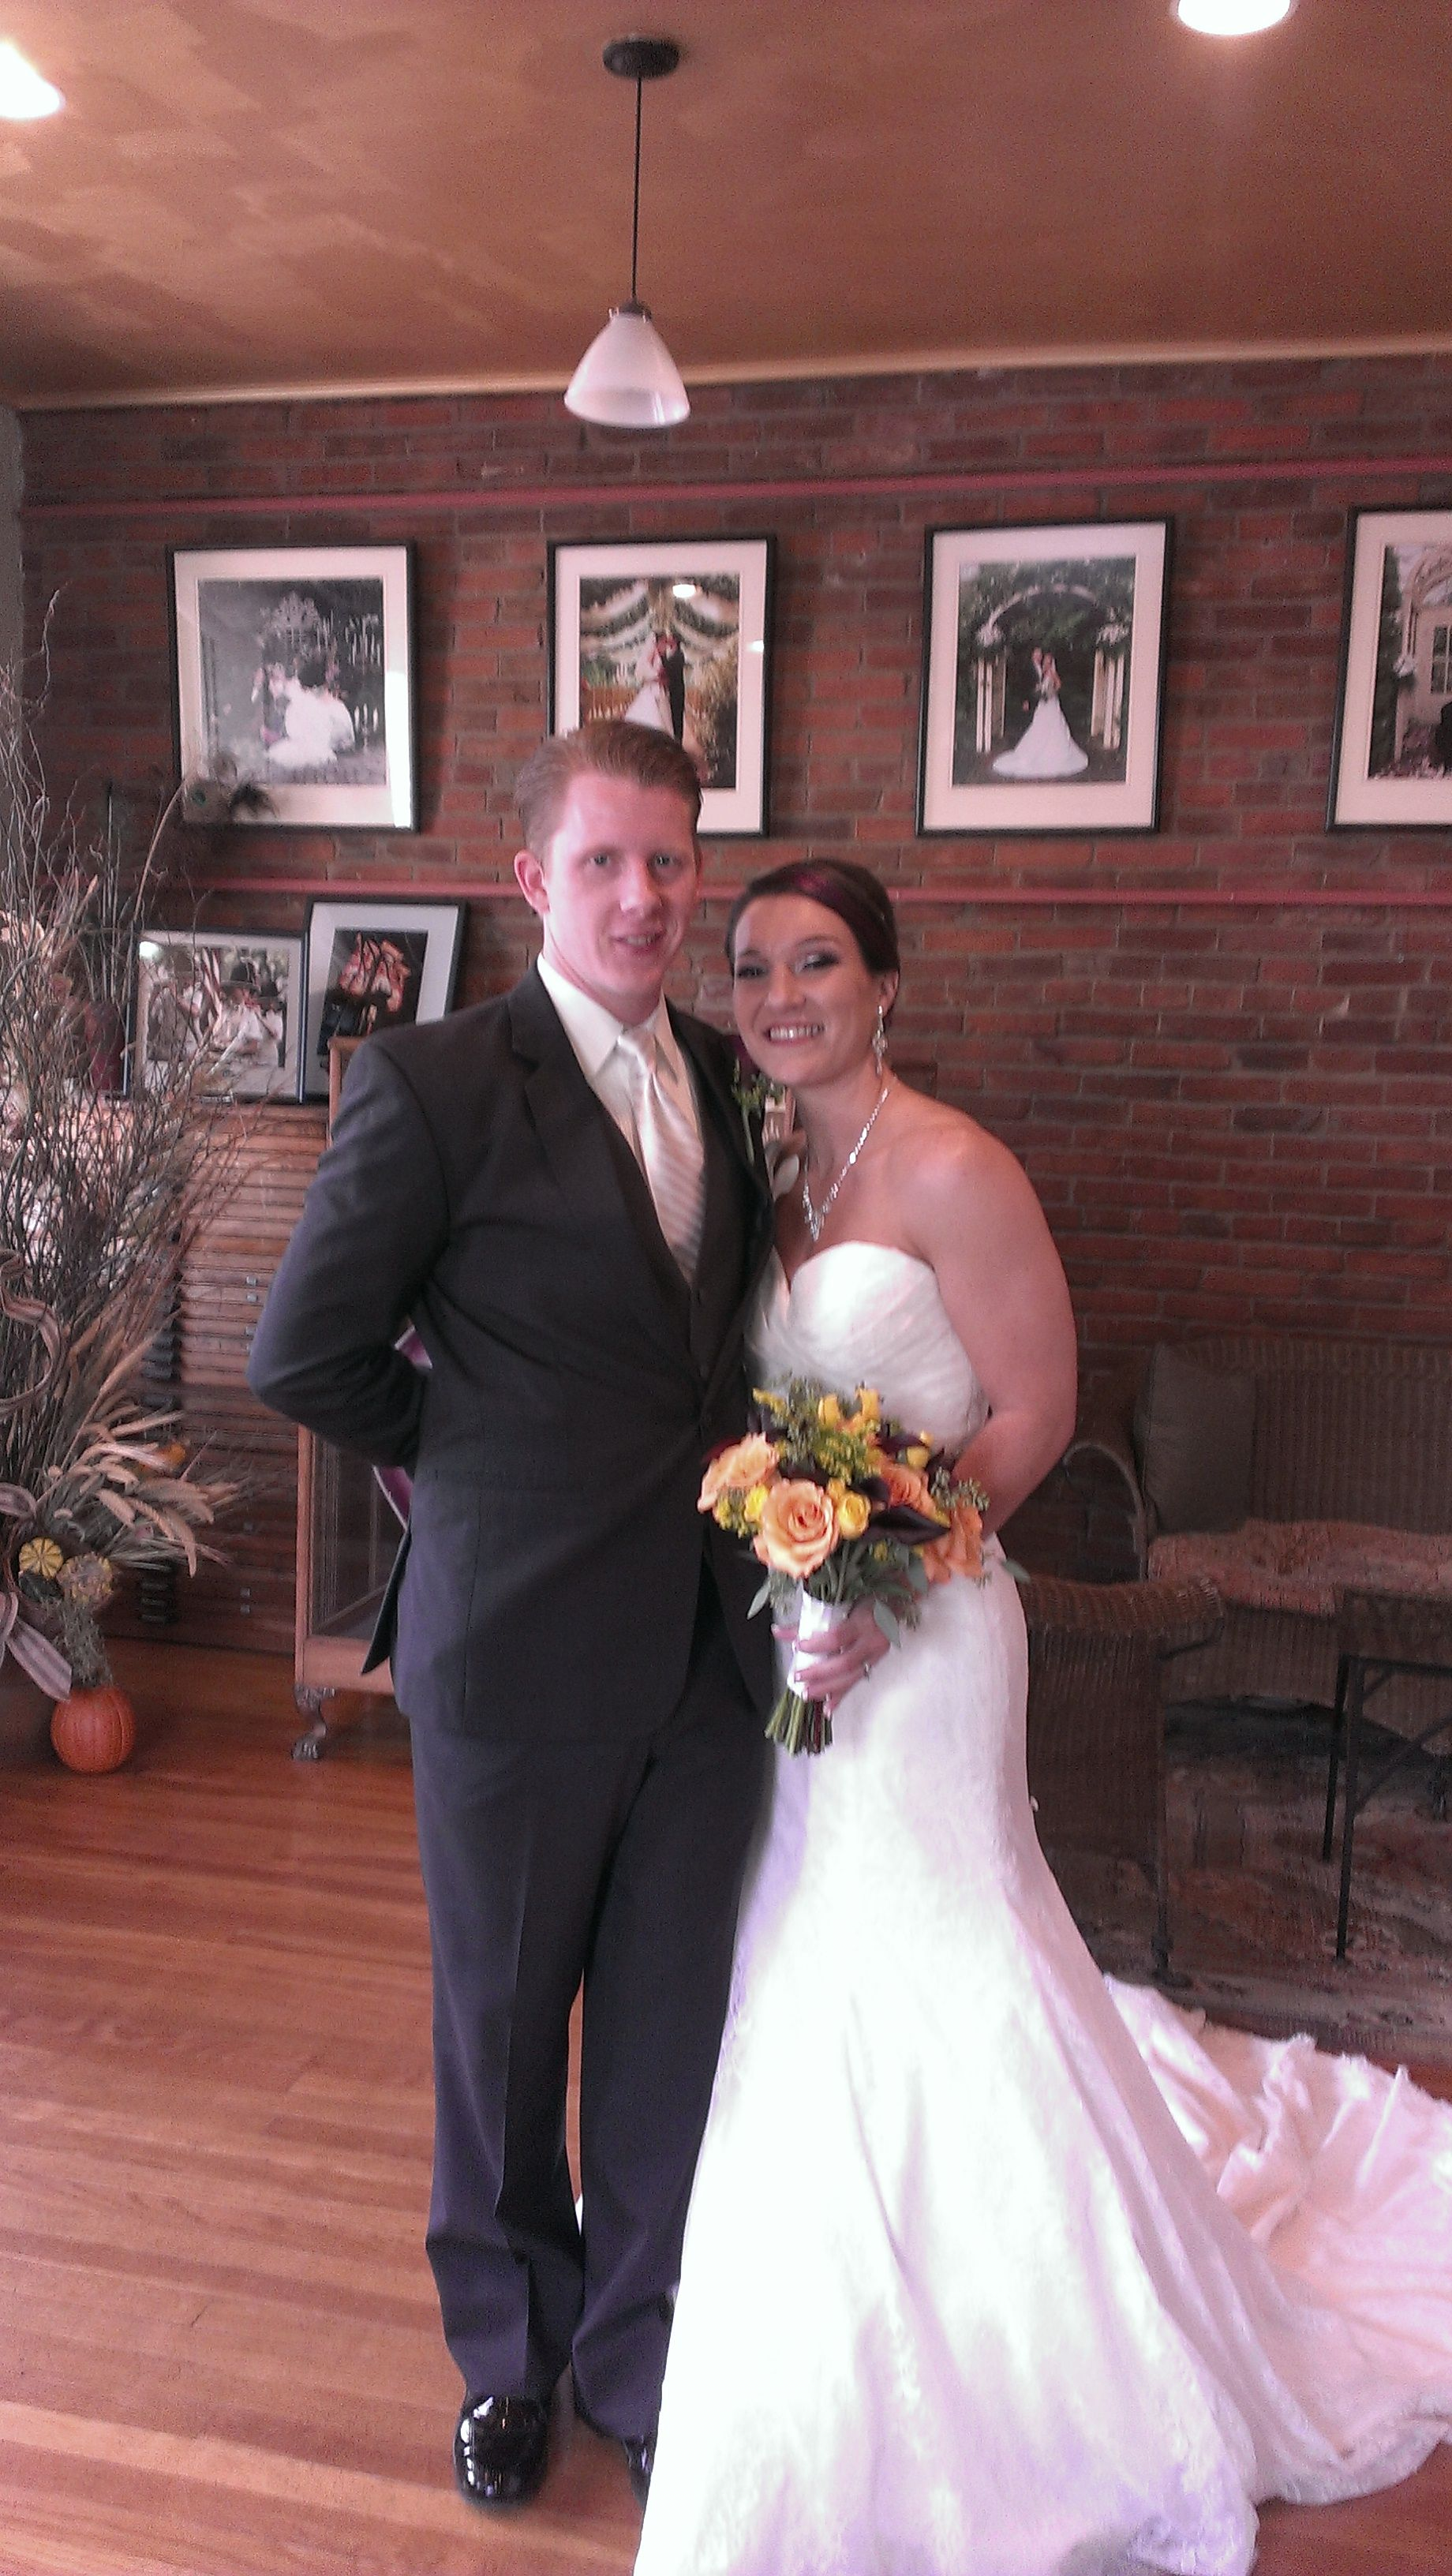 Eric and erica were married at the conservatory on 1019